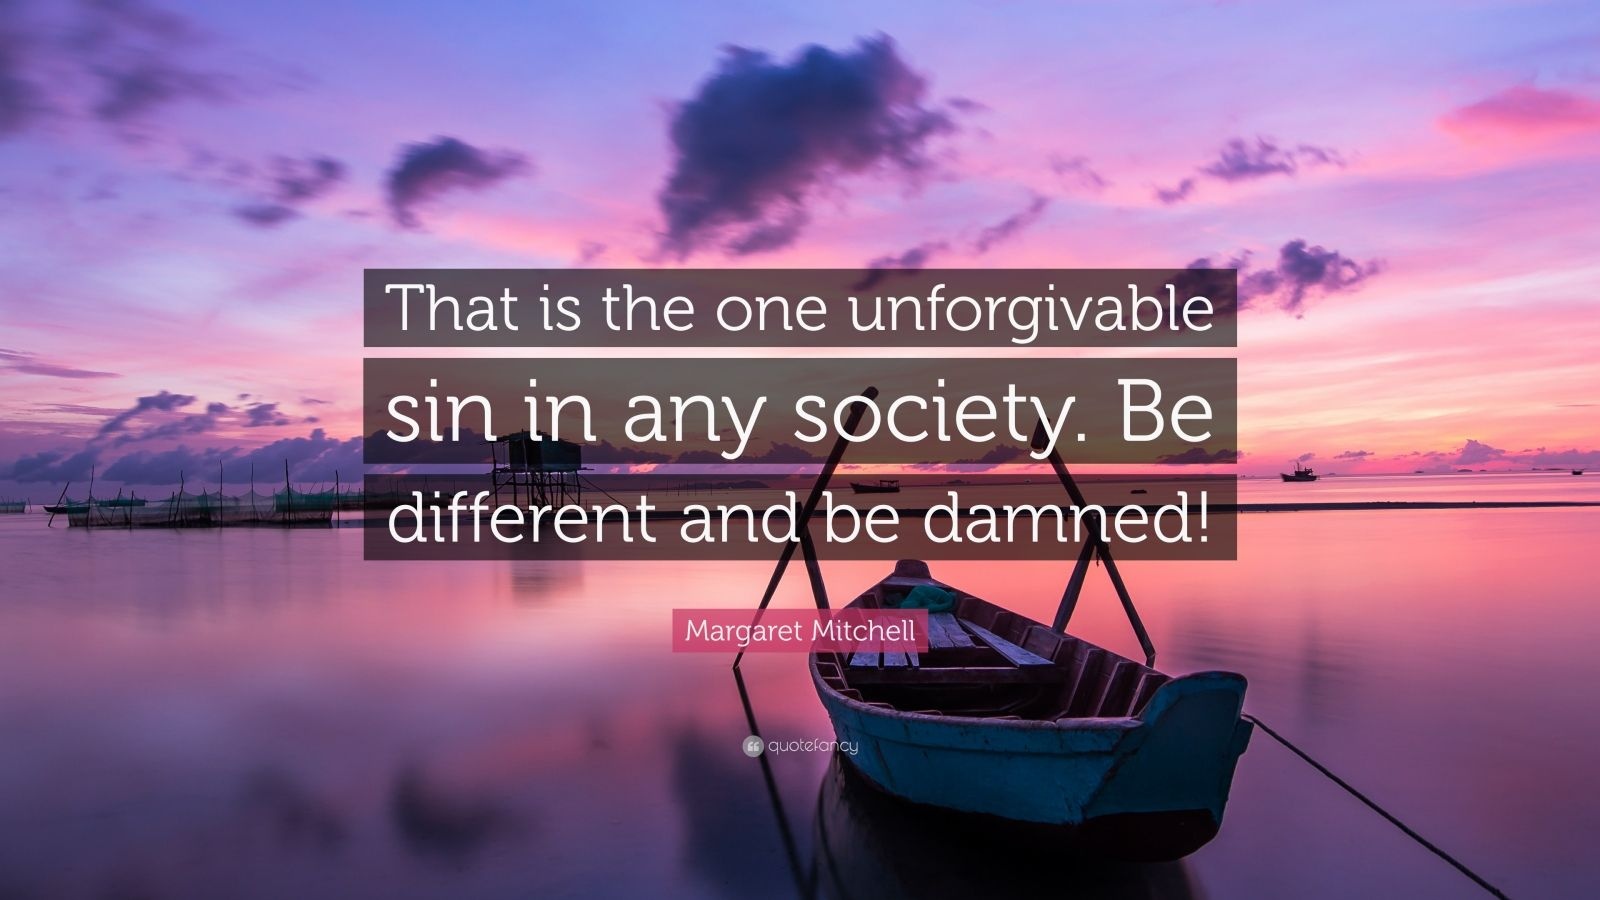 """Margaret Mitchell Quote: """"That is the one unforgivable sin in any society. Be different and be damned!"""""""